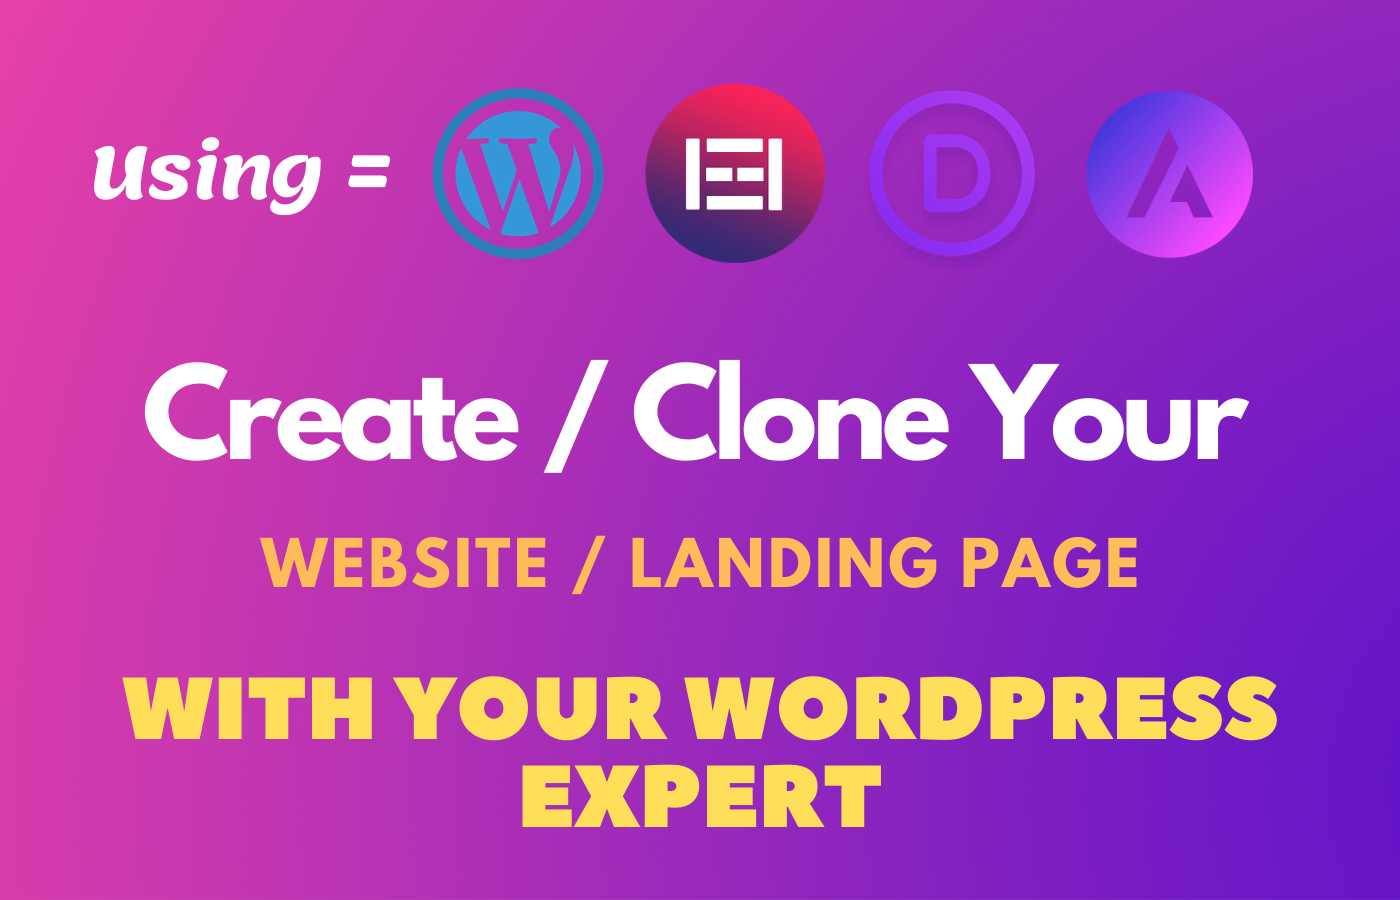 I will create wordpress website or landing page using elementor pro,  divi,  astra pro,  avada